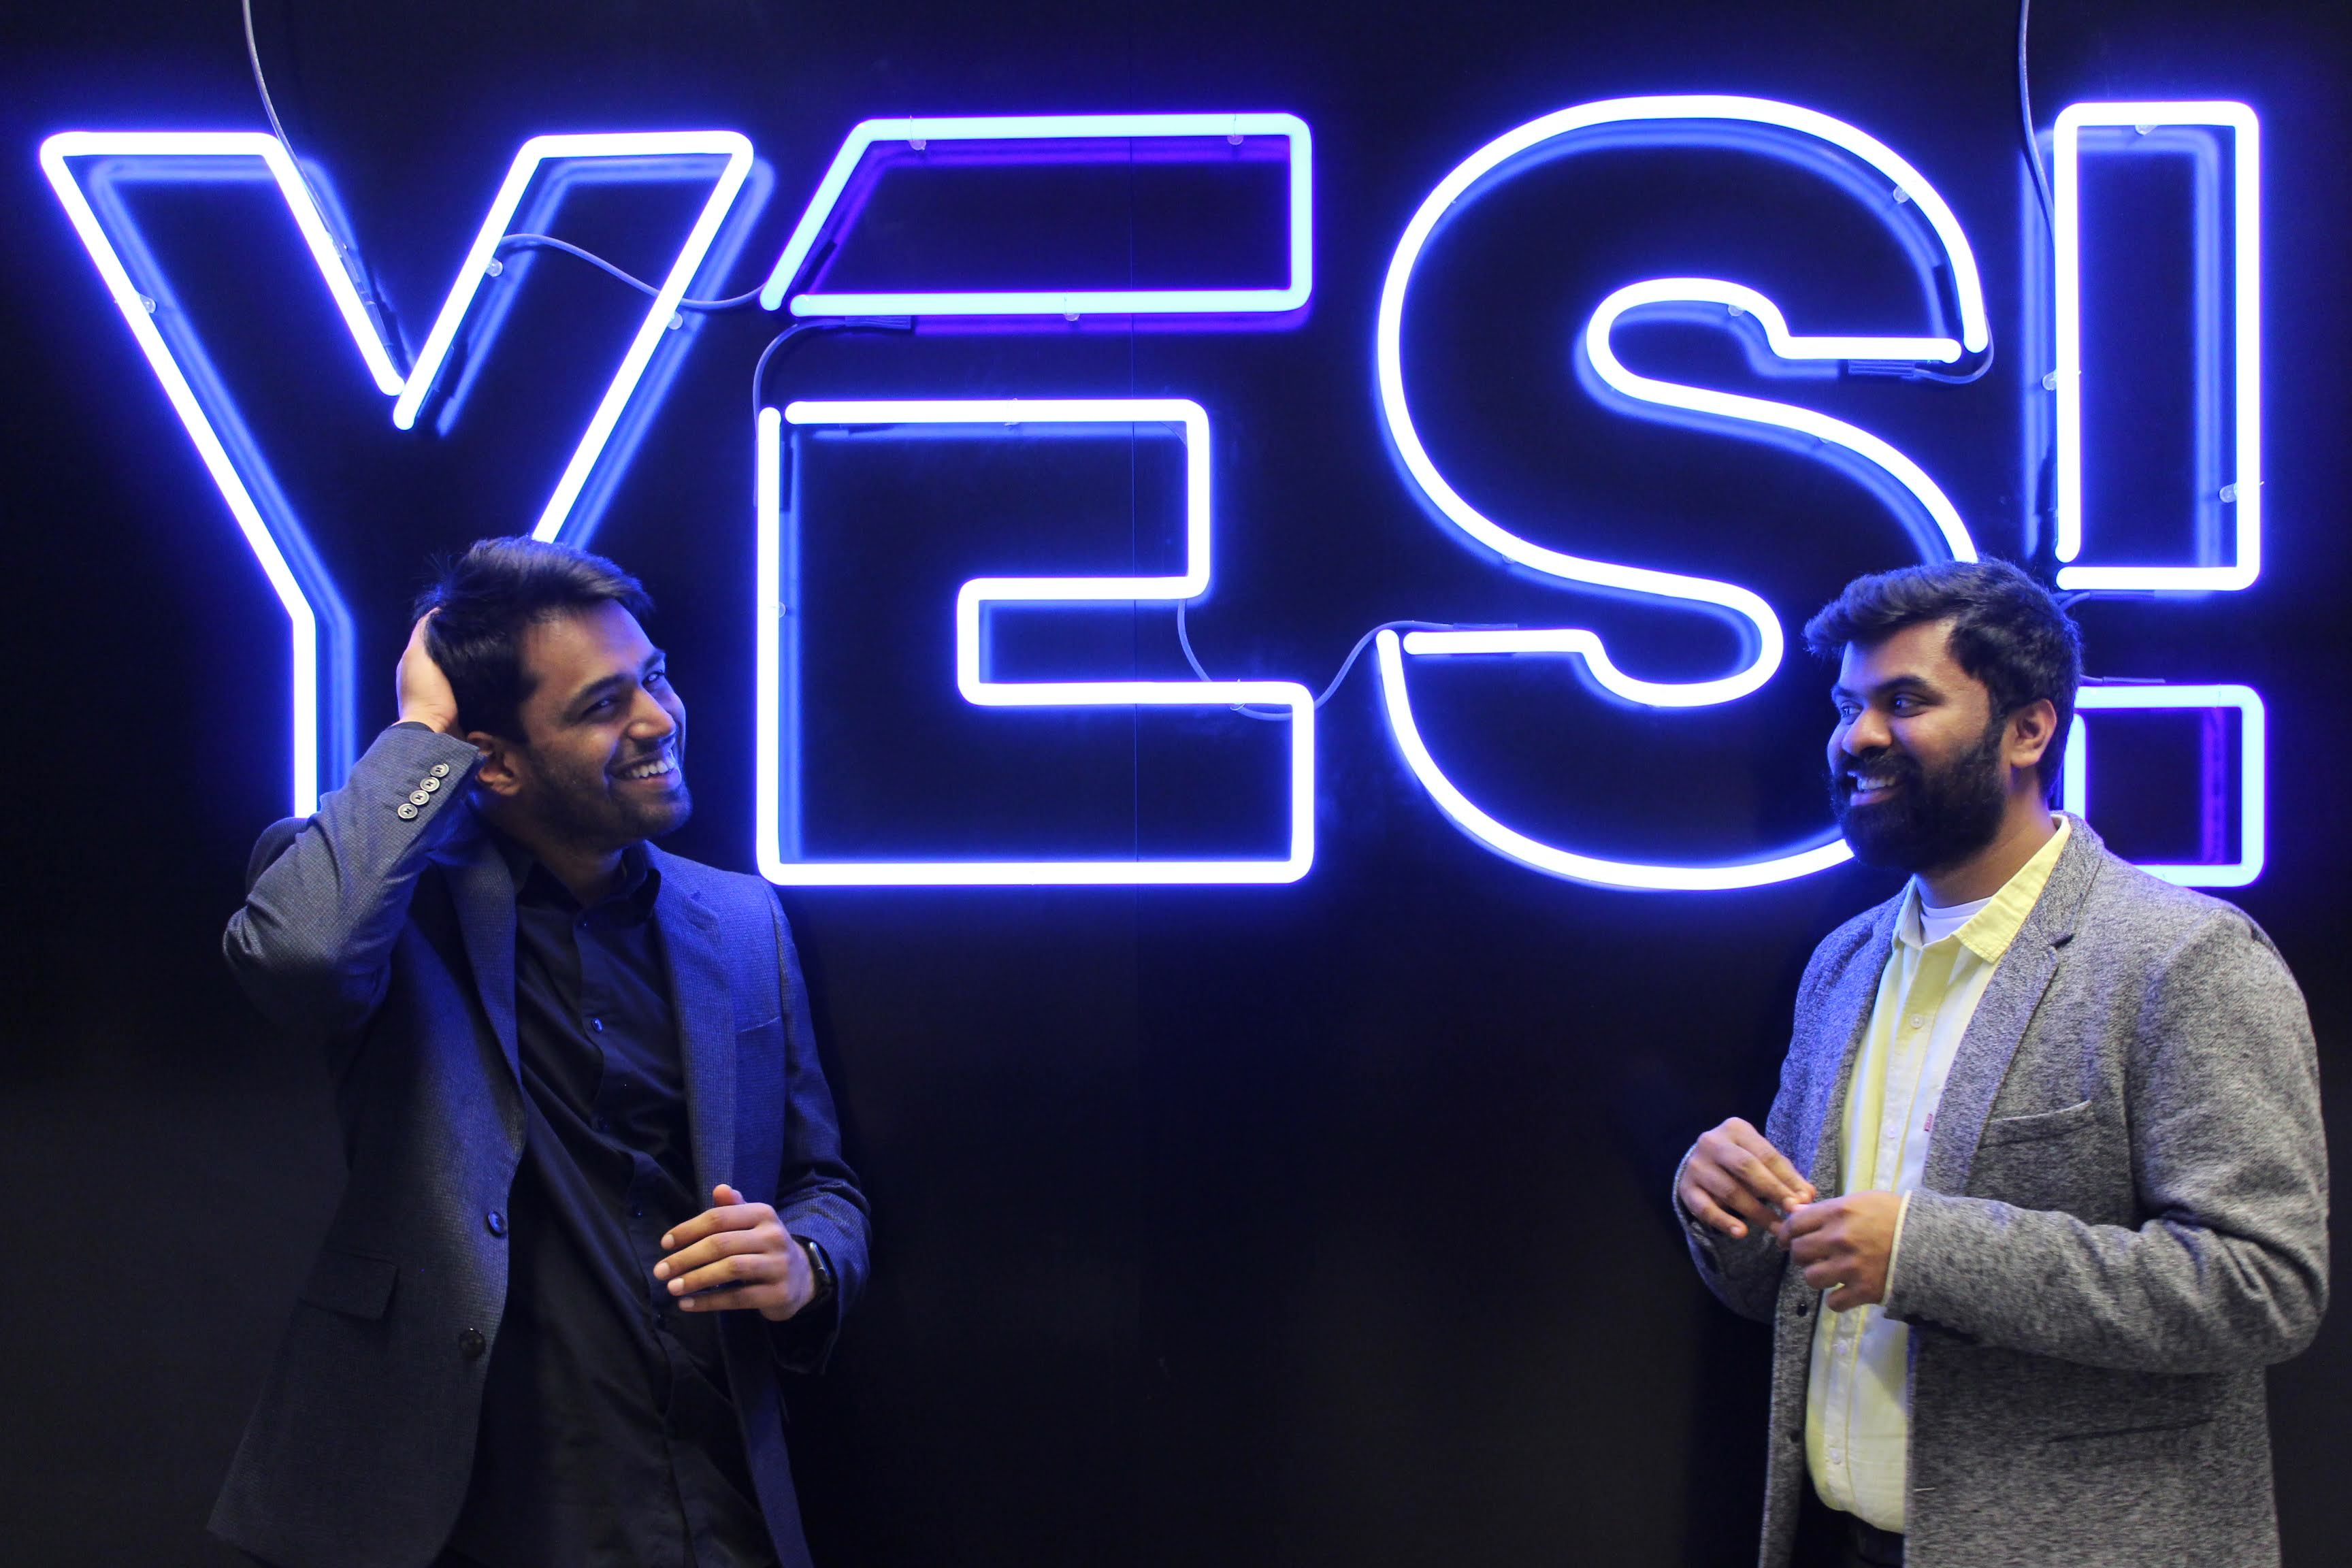 Founders Karthik Mahadevan and Karthik Kannan smile while posing in front of a big blue neon sign which reads YES!, the logo of Envision's hub.